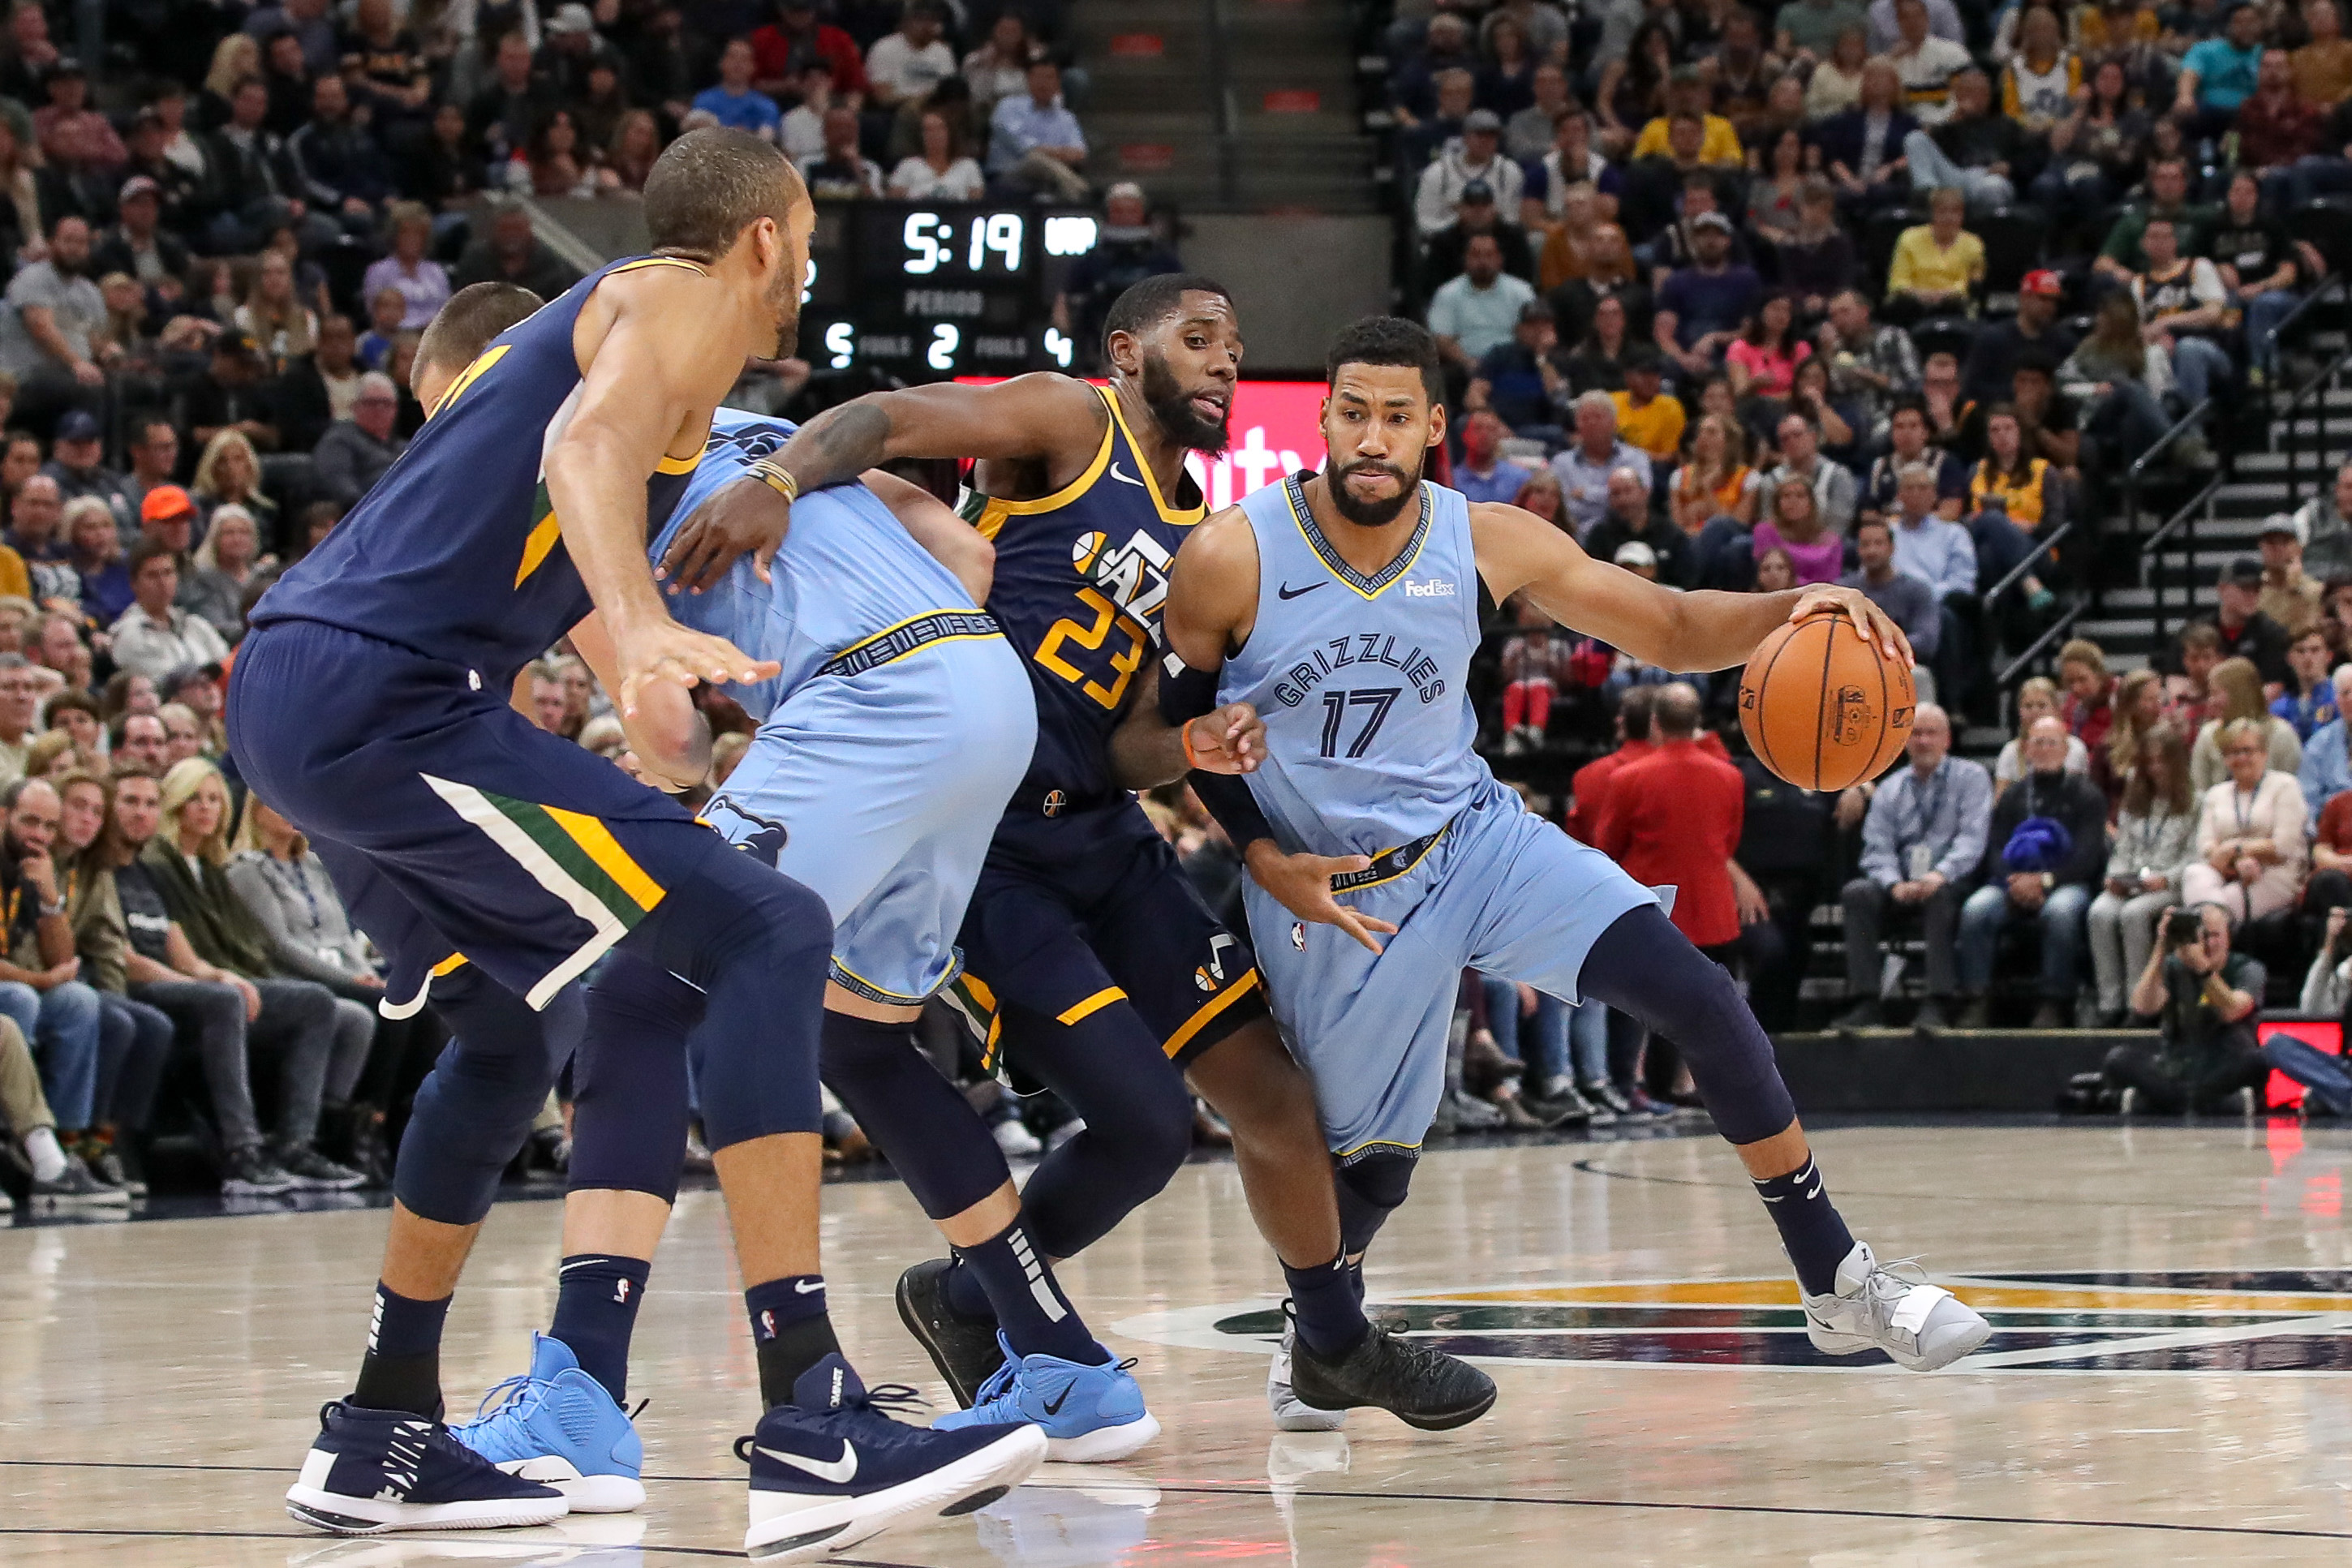 Memphis Grizzlies encroach onto state land—Utah Jazz suffer f985f5e95